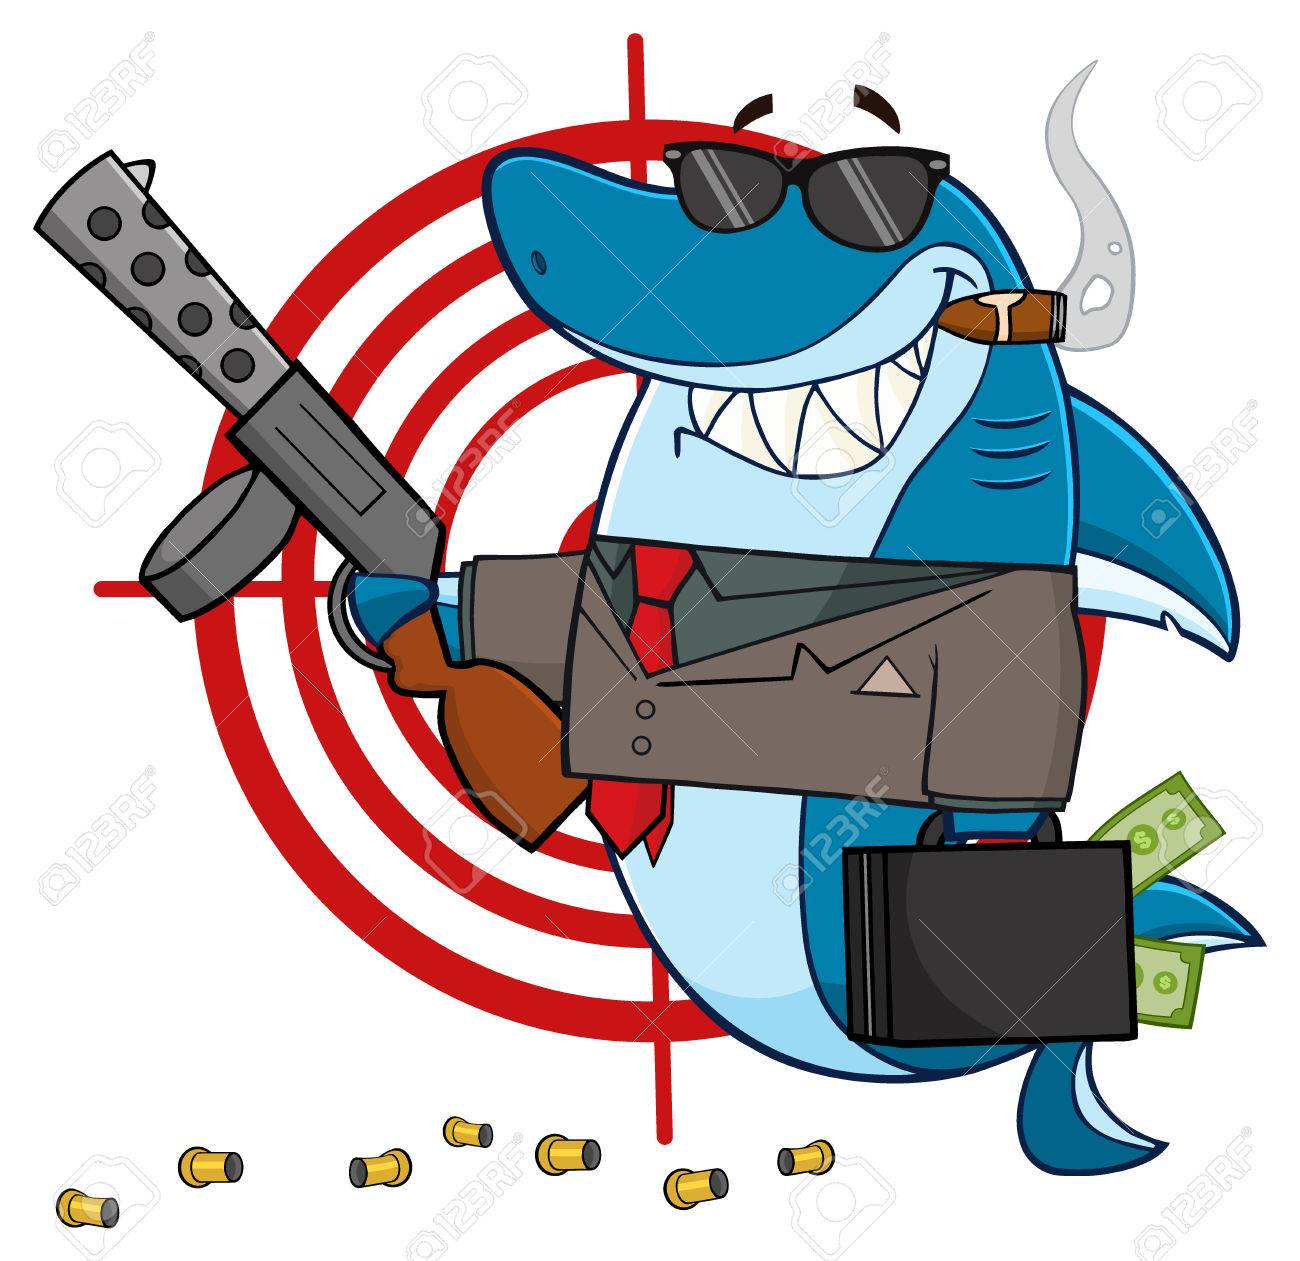 smiling shark mobster cartoon mascot character carrying a briefcase